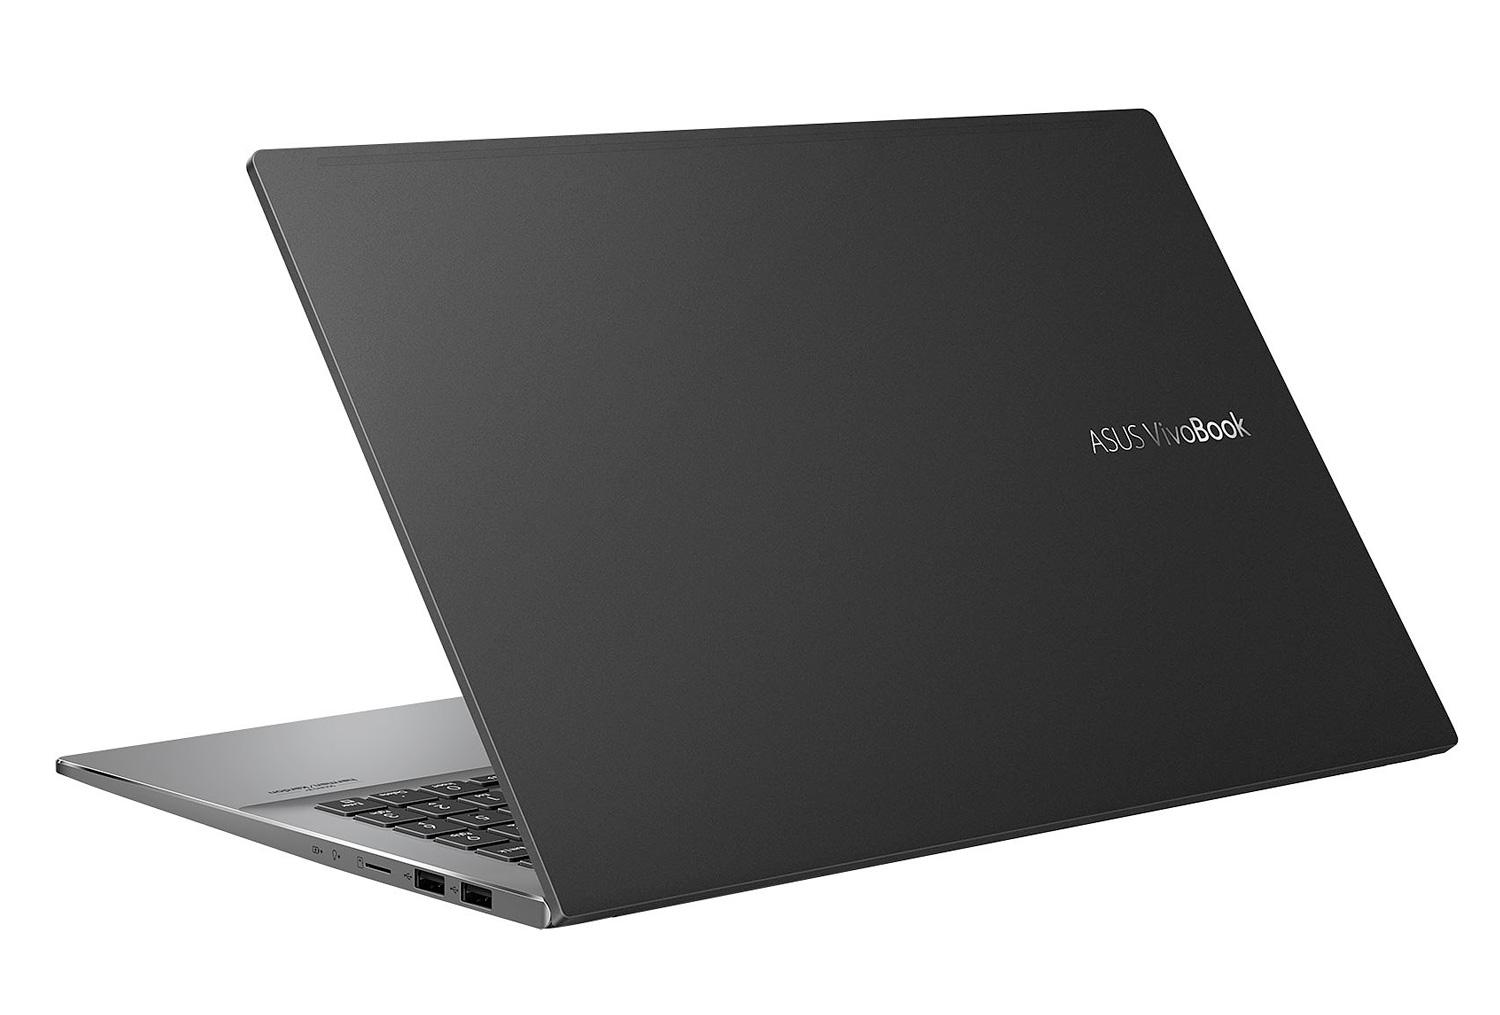 Ordinateur portable Asus Vivobook S533IA-BQ086T Noir/Gris - Ryzen 7 Octo Core  - photo 5